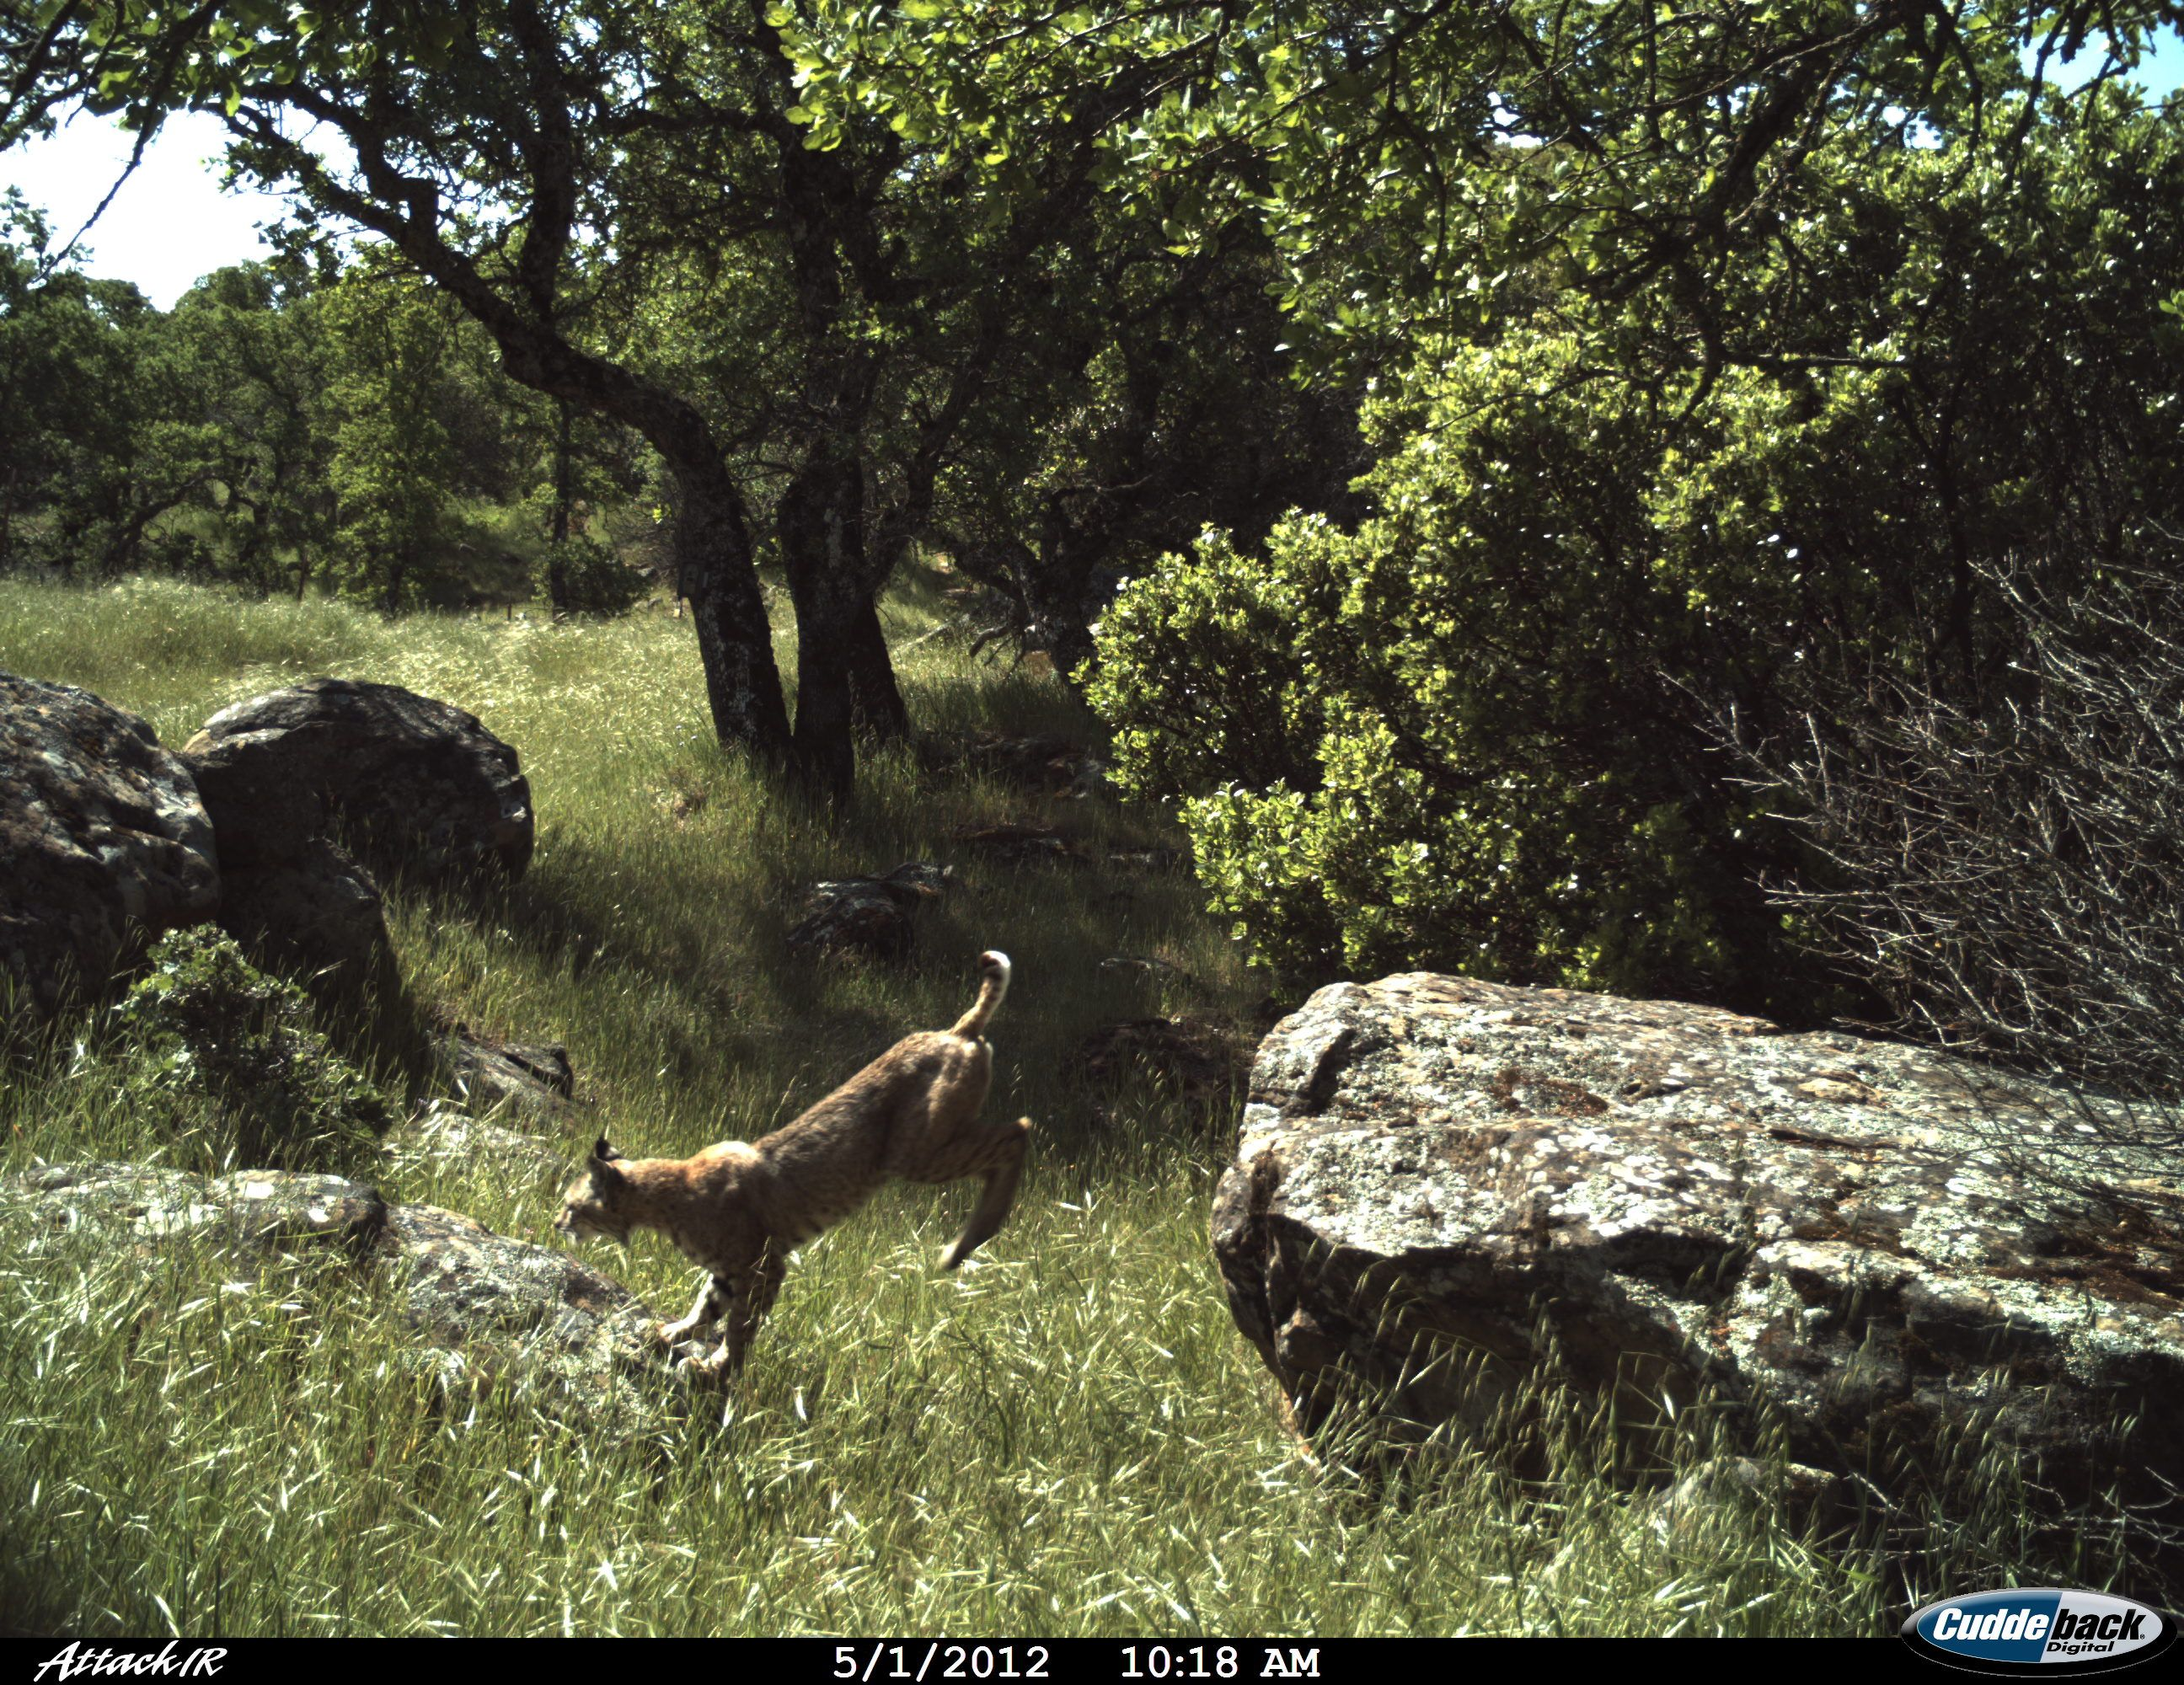 Remote Camera Photo of the Week!    Every Friday, we post a photo from our remote camera research database from the Bay Area Puma Project and from photos shared with us.    To submit a photo for Photo of the Week, email info@felidaefund.org! If your photo is chosen, we will send you tickets to the San Francisco Zoo OR a Bay Area Puma Project water bottle.    This week's photo is - Bobcat in Flight in the East San Francisco Bay Area, California